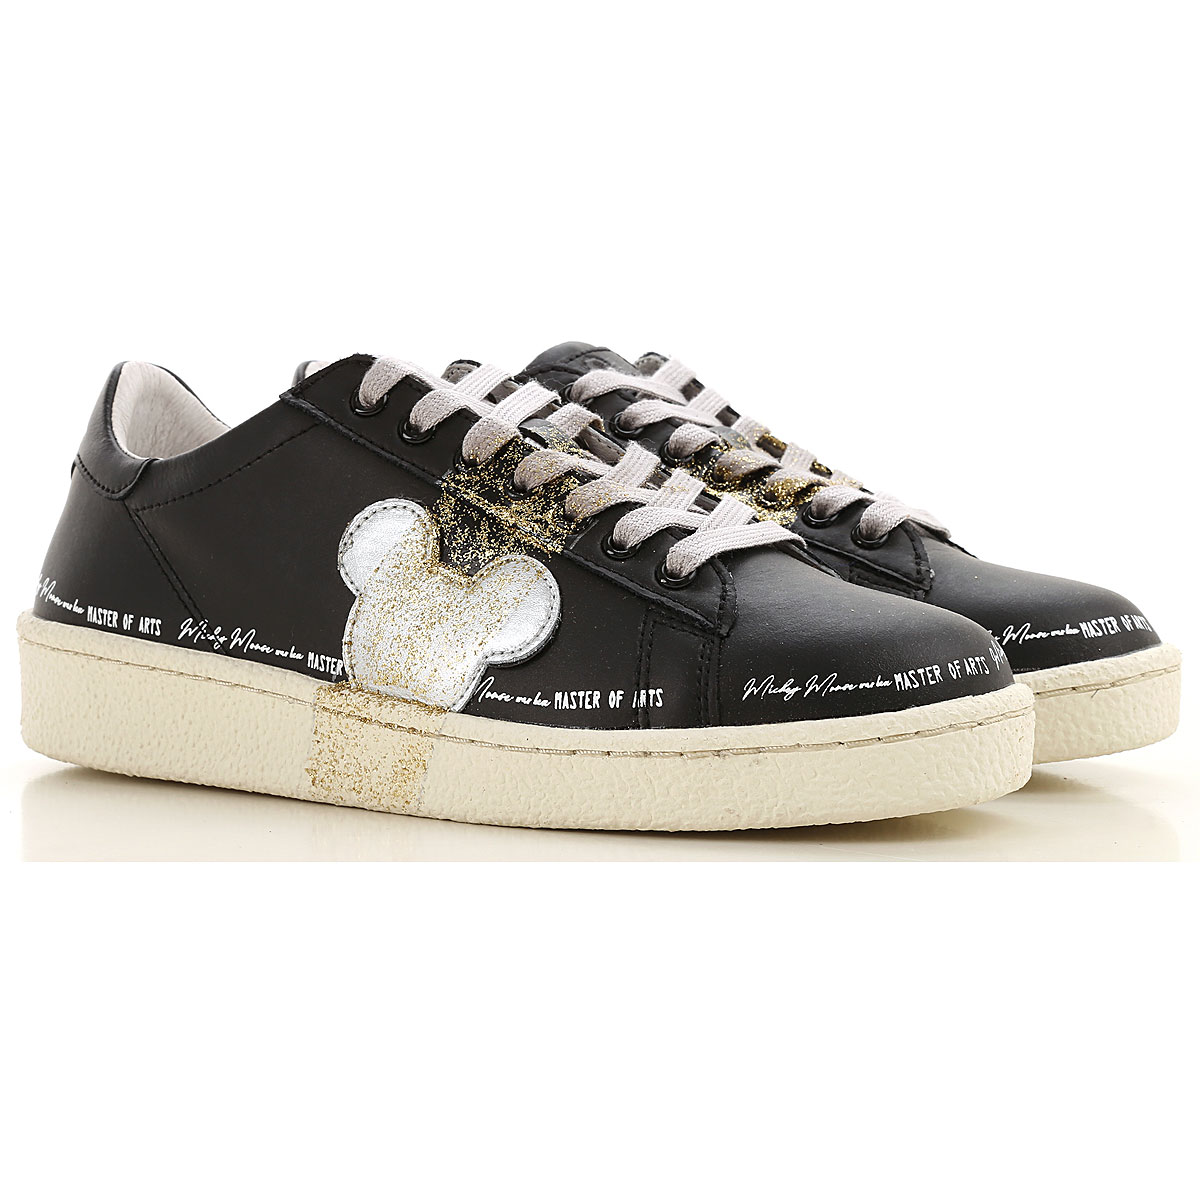 Moa Master of Arts Sneakers for Women On Sale, Black, Leather, 2019, 6 7 8 9